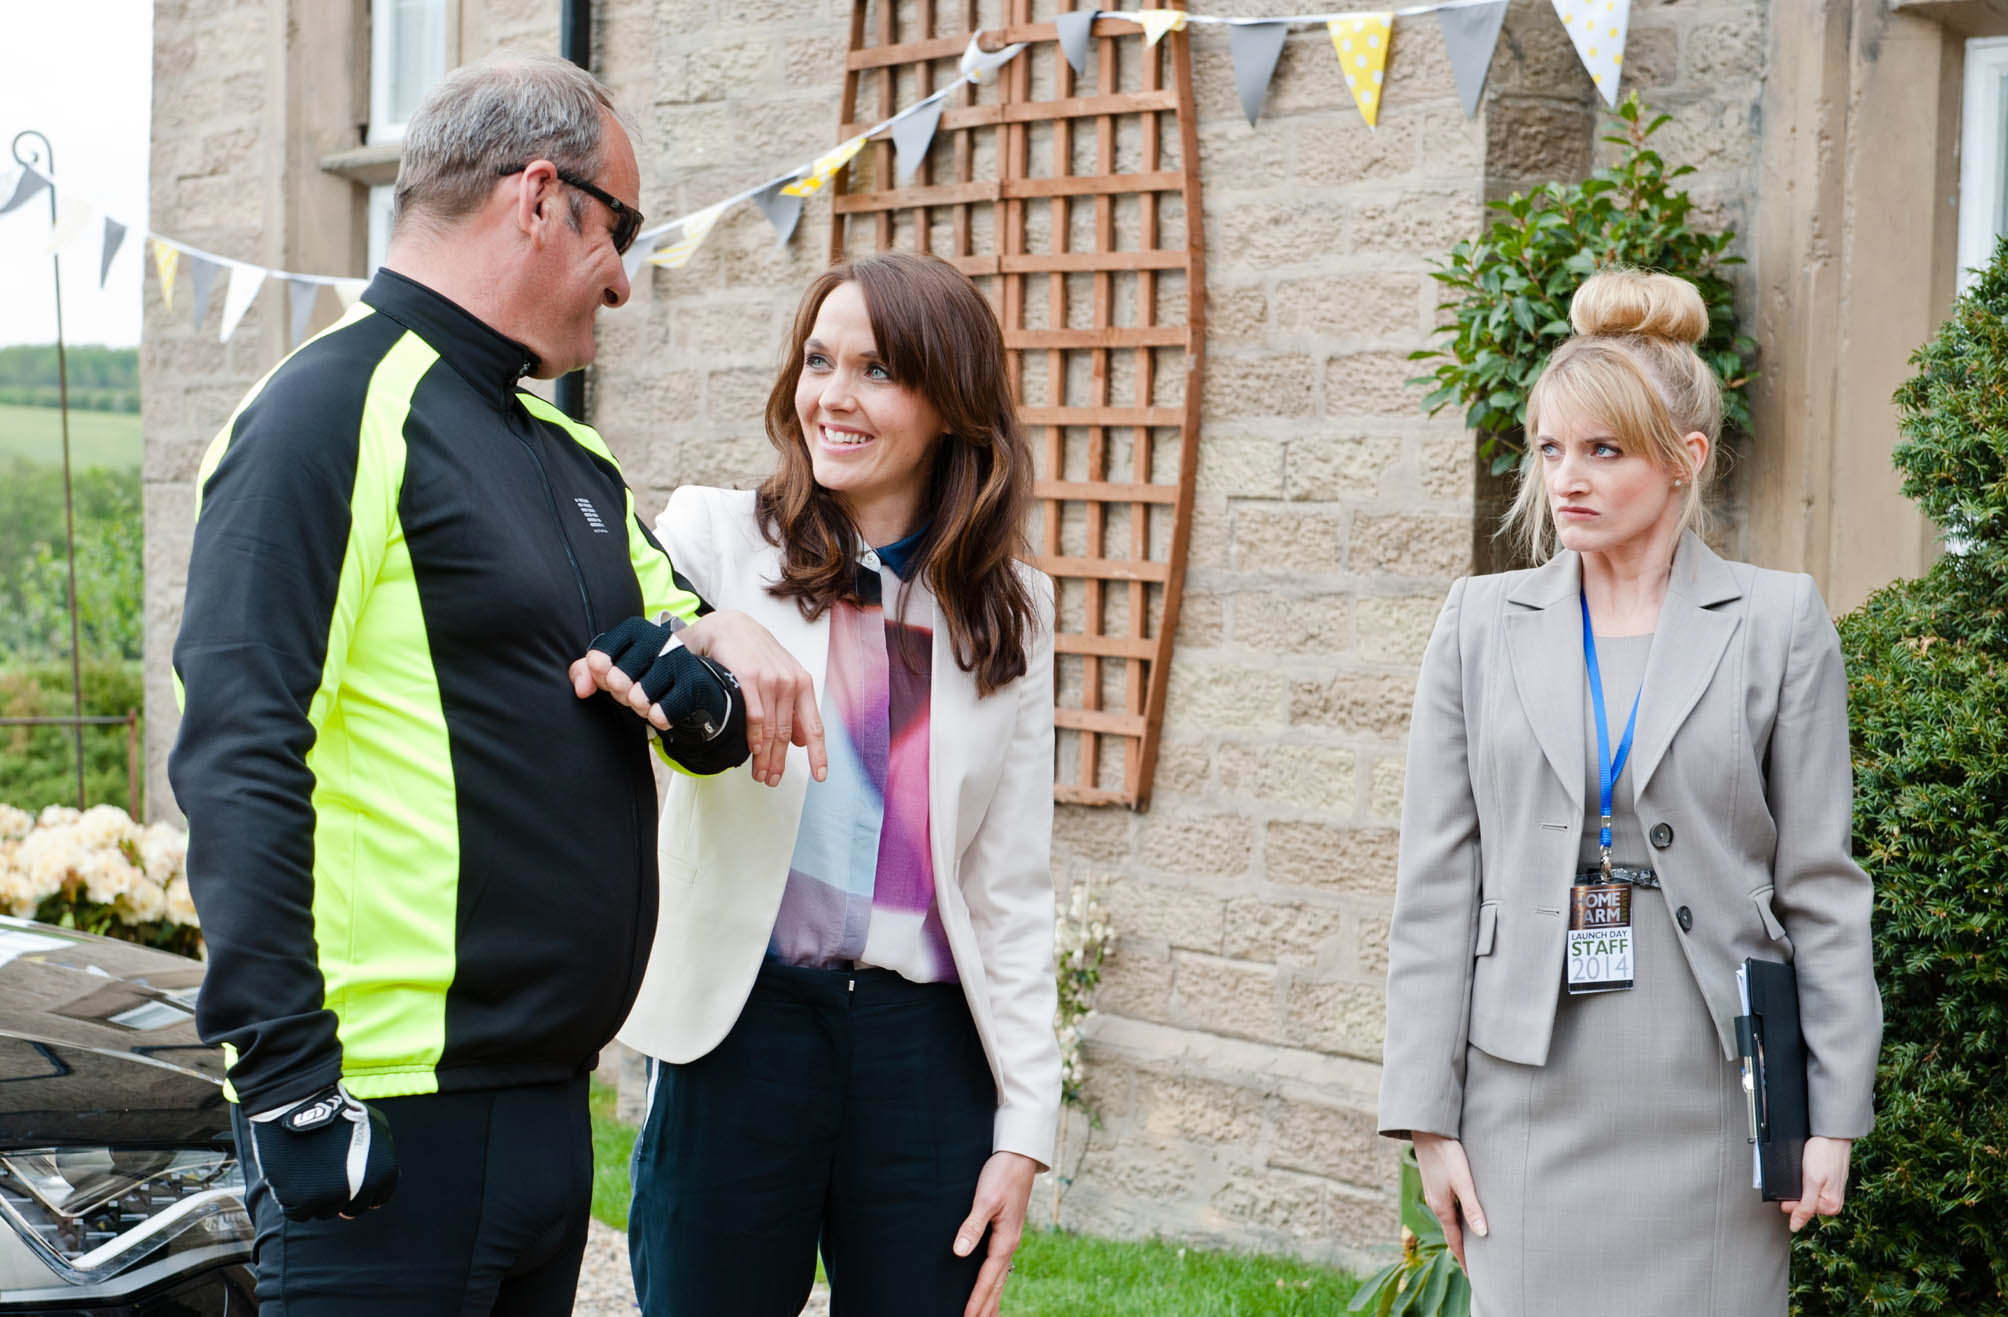 Victoria Pendleton popped up on Emmerdale last night to relaunch Home Farm